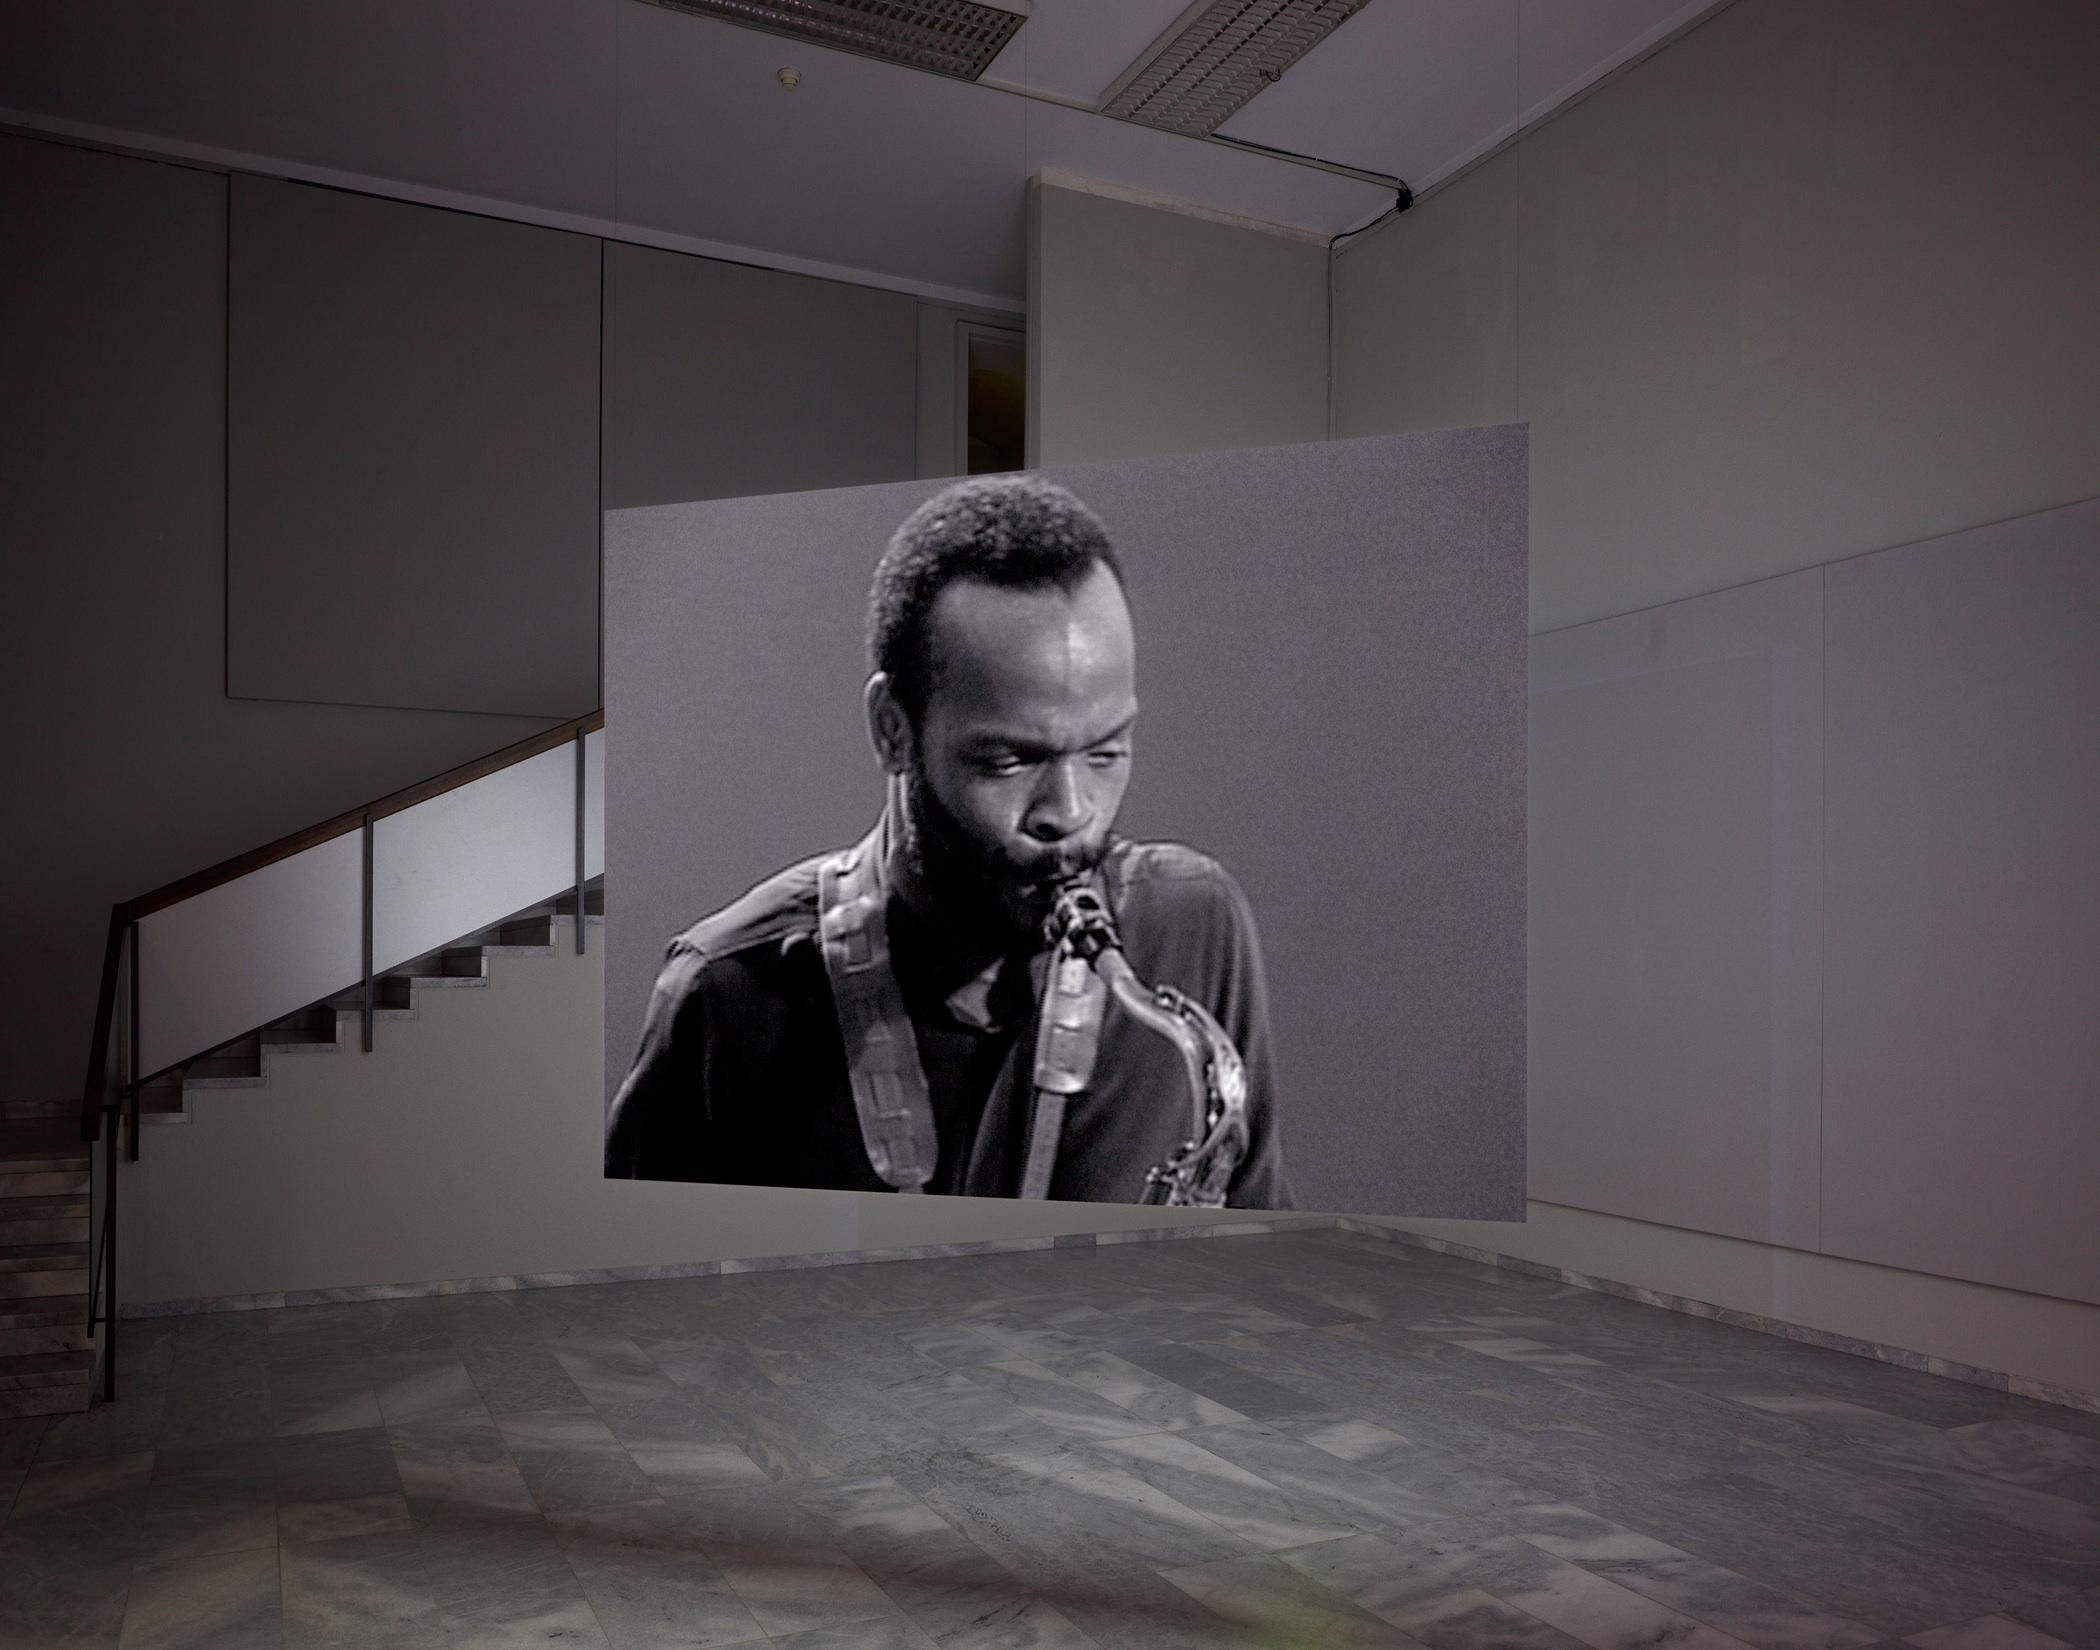 A portrait of a man playing saxophone is seen on a screen suspended from wires in the middle of a room.